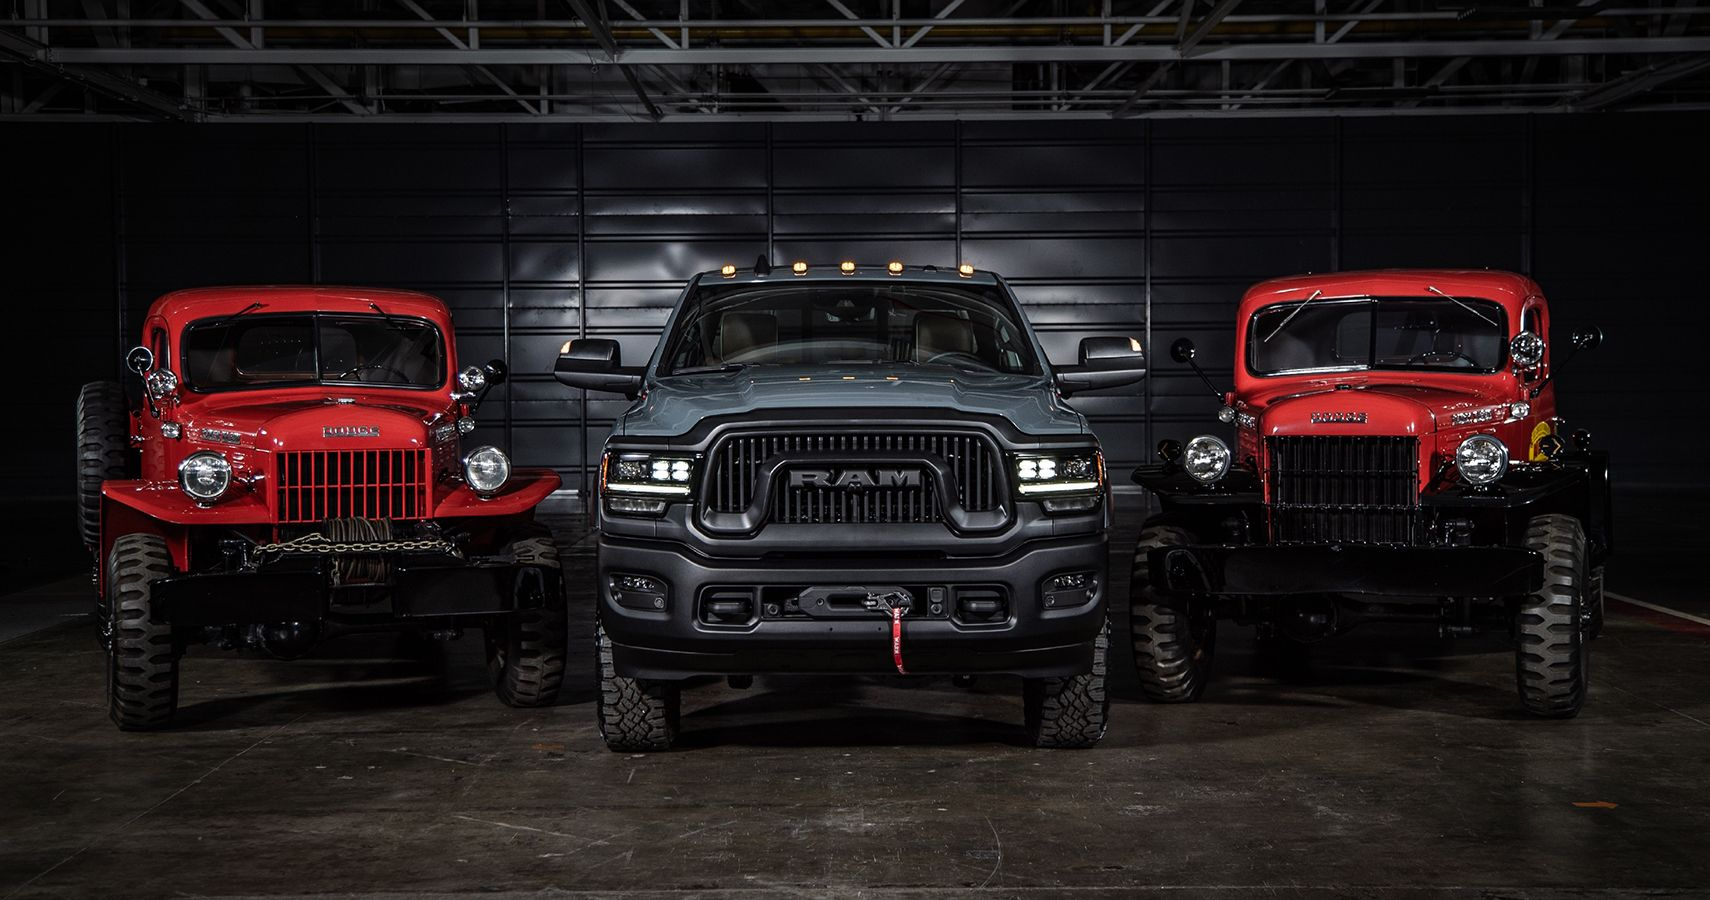 2021 Ram Power Wagon 75th Anniversary Edition Arrives In ...